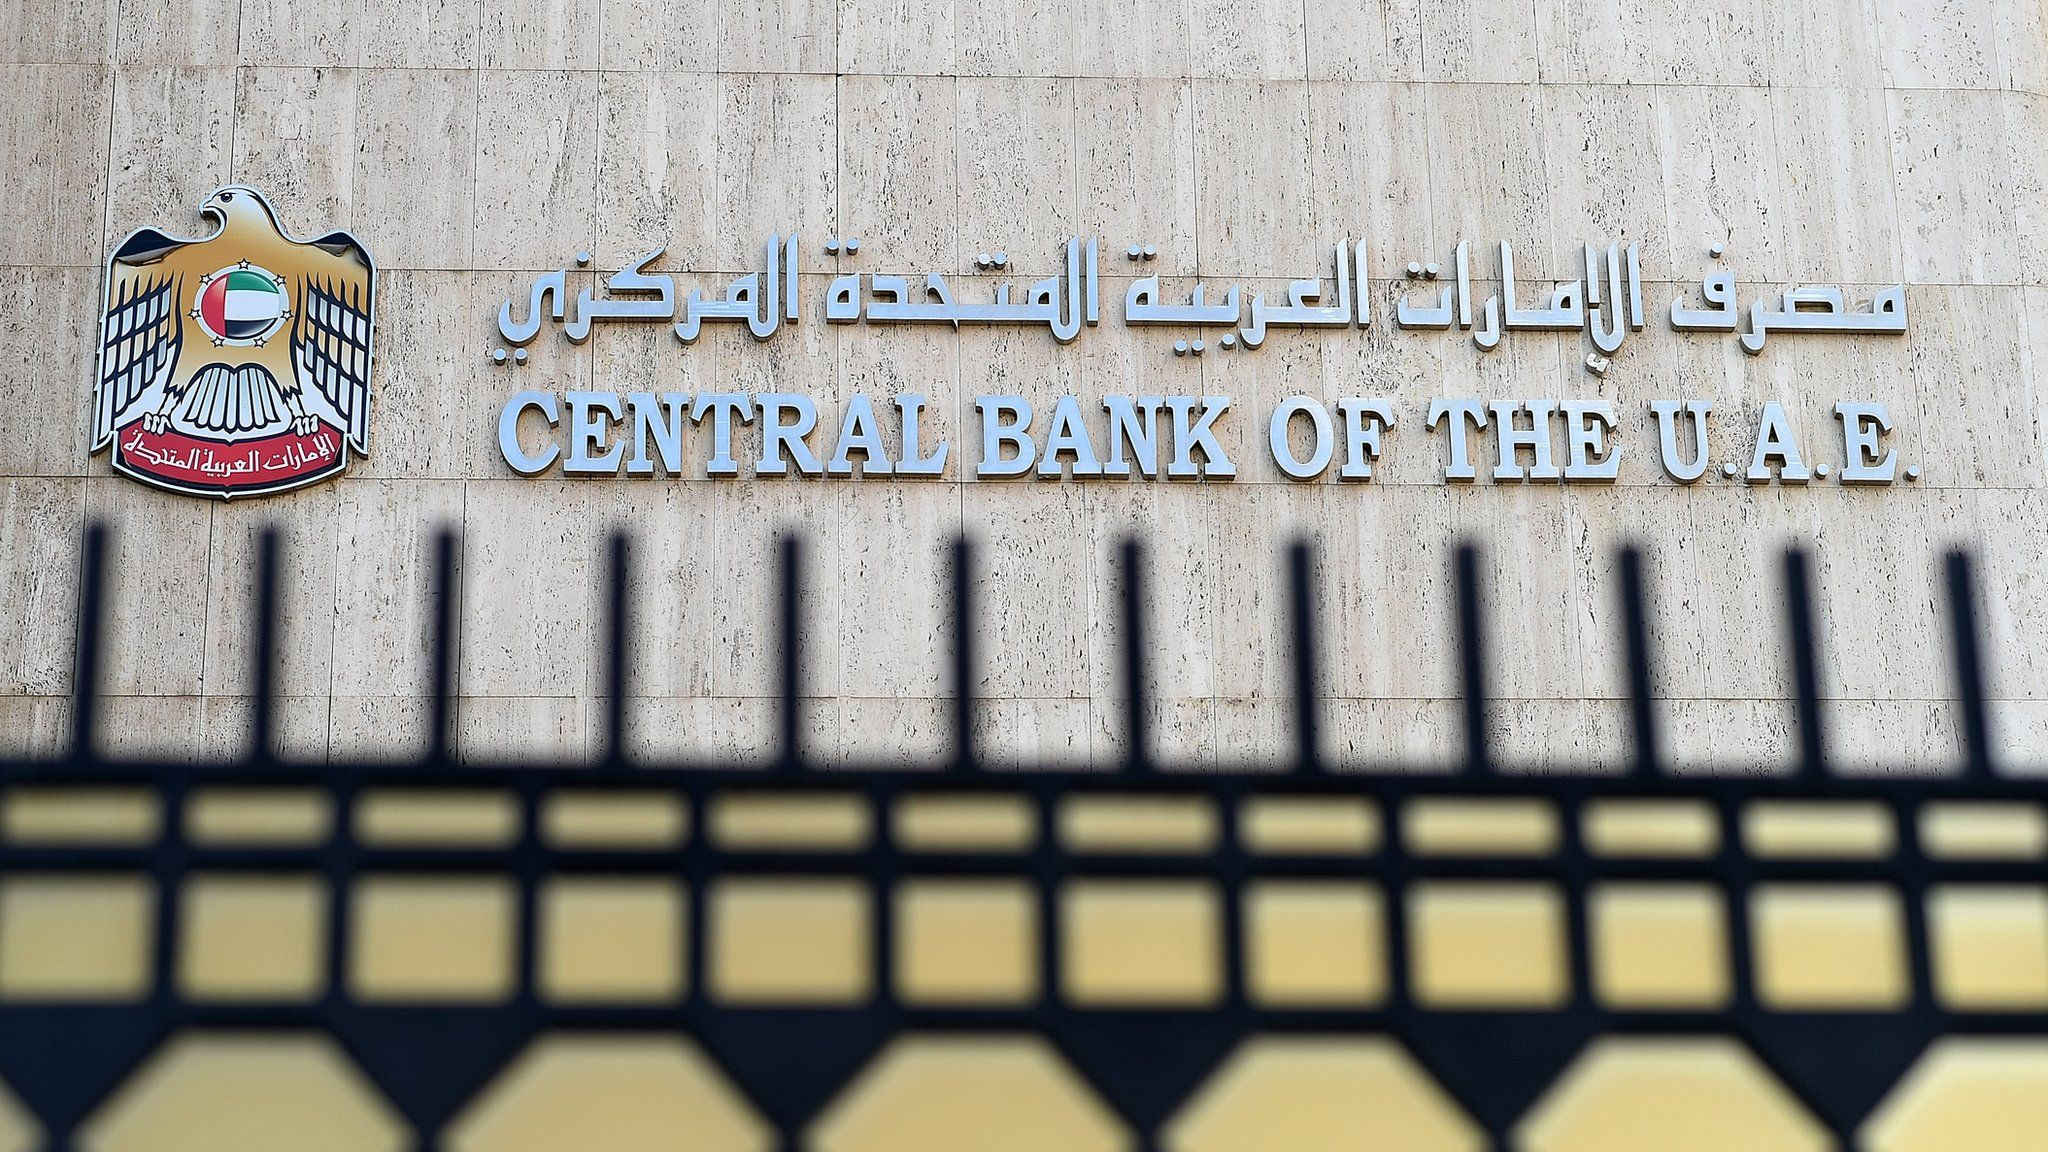 Fincen Files Uae Central Bank Failed To Prevent Iran Sanctions Evasion Bbc News